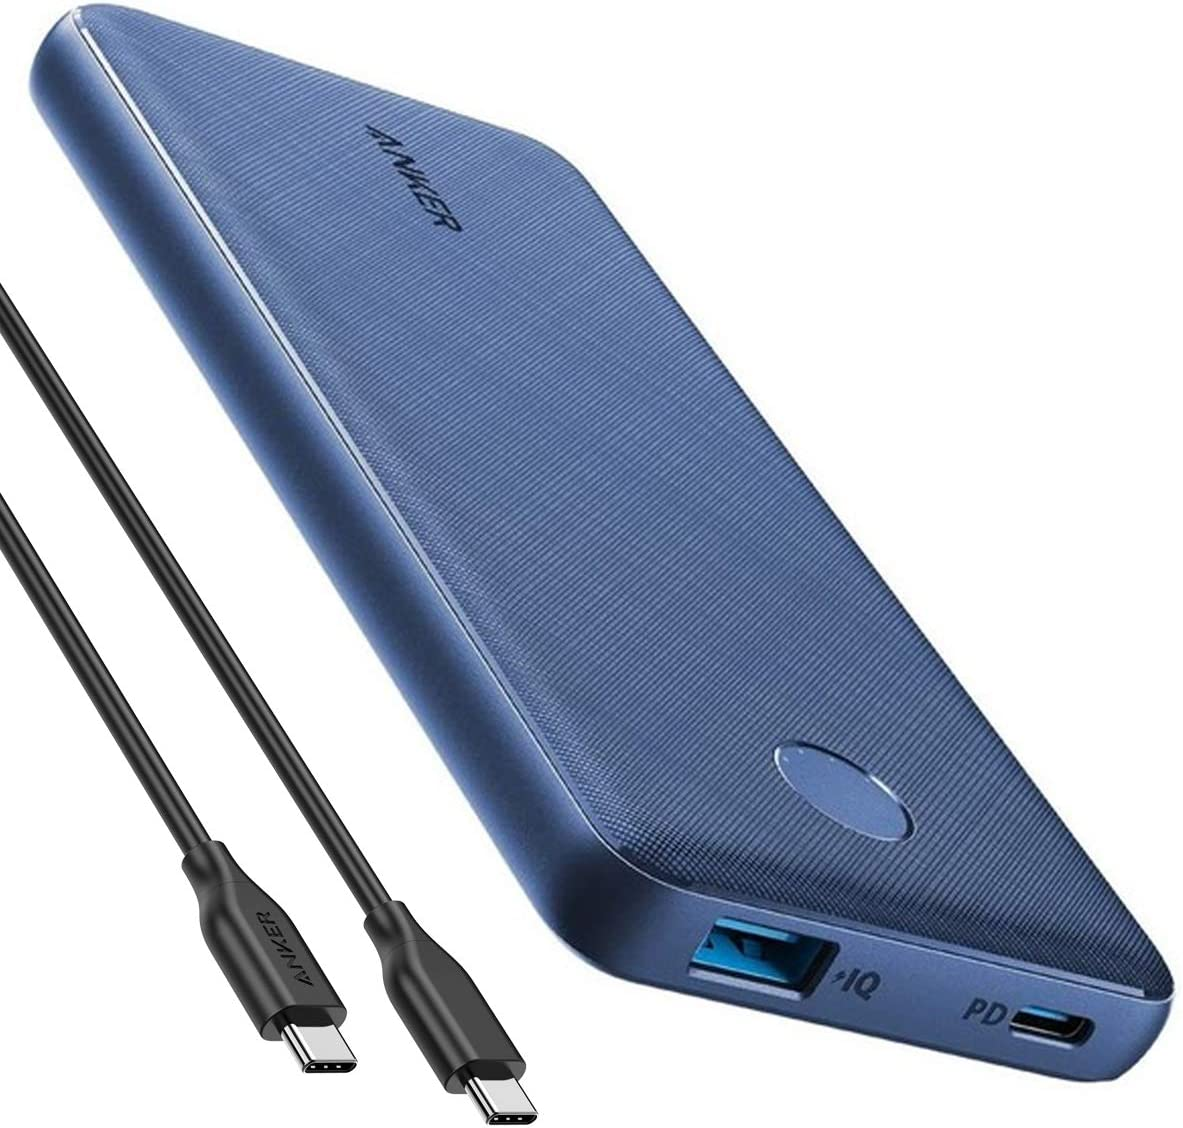 Anker PowerCore Slim 10000 PD 10000mAh Portable Charger USB-C Power Delivery (18W) Power Bank for iPhone 8/8+/X/XS/XR/XS Max, Samsung Galaxy S10, Pixel 3/3XL, iPad Pro 2018, and More (Deep-Sea Indigo)